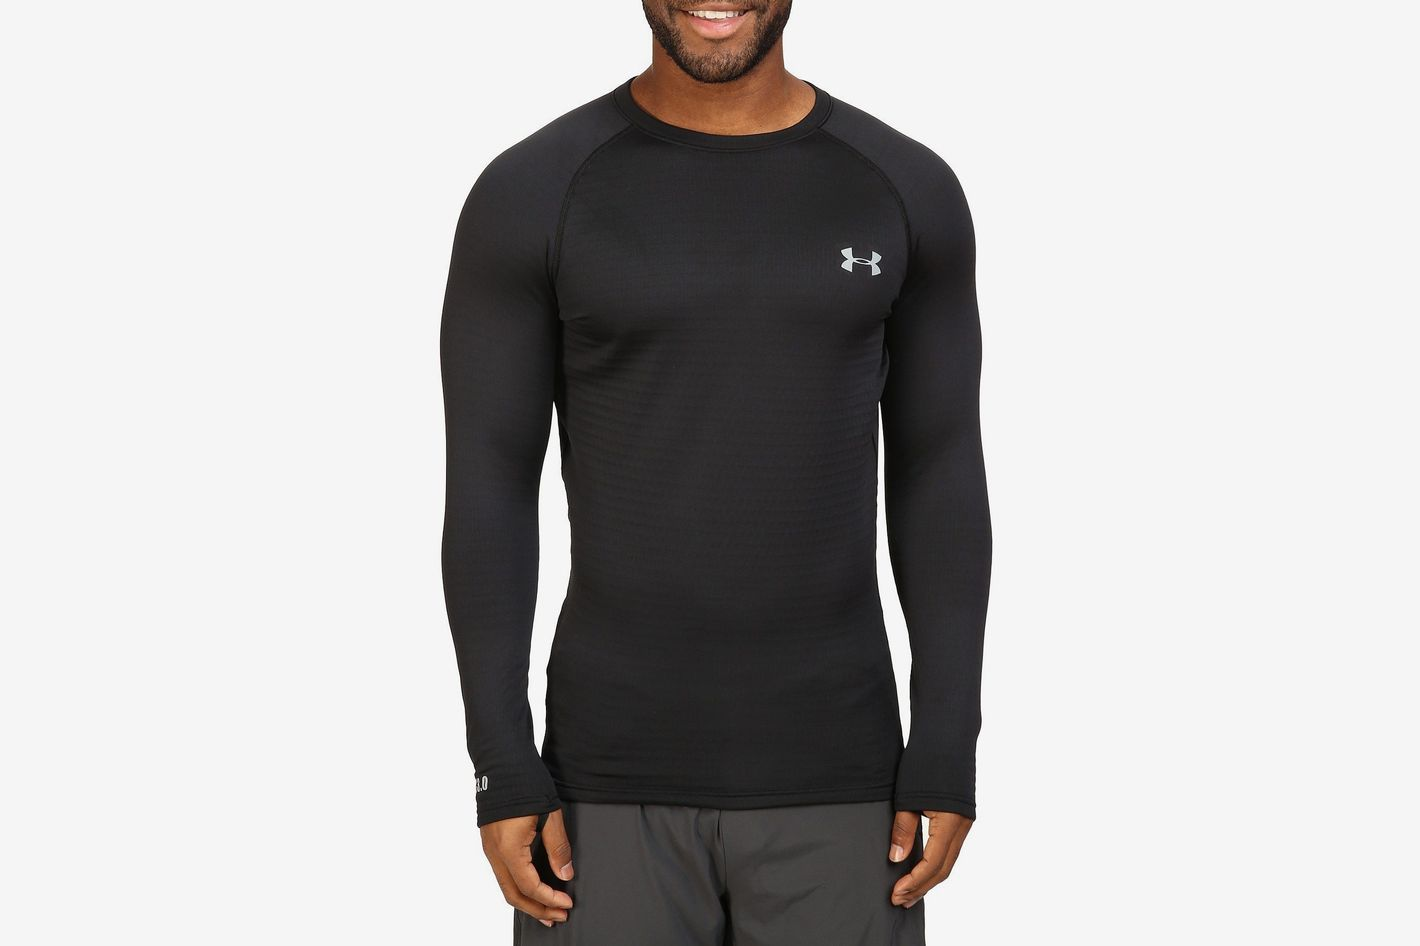 db1c7350 The Best Base Layers, 2018: Merino Wool, Under Armour, More